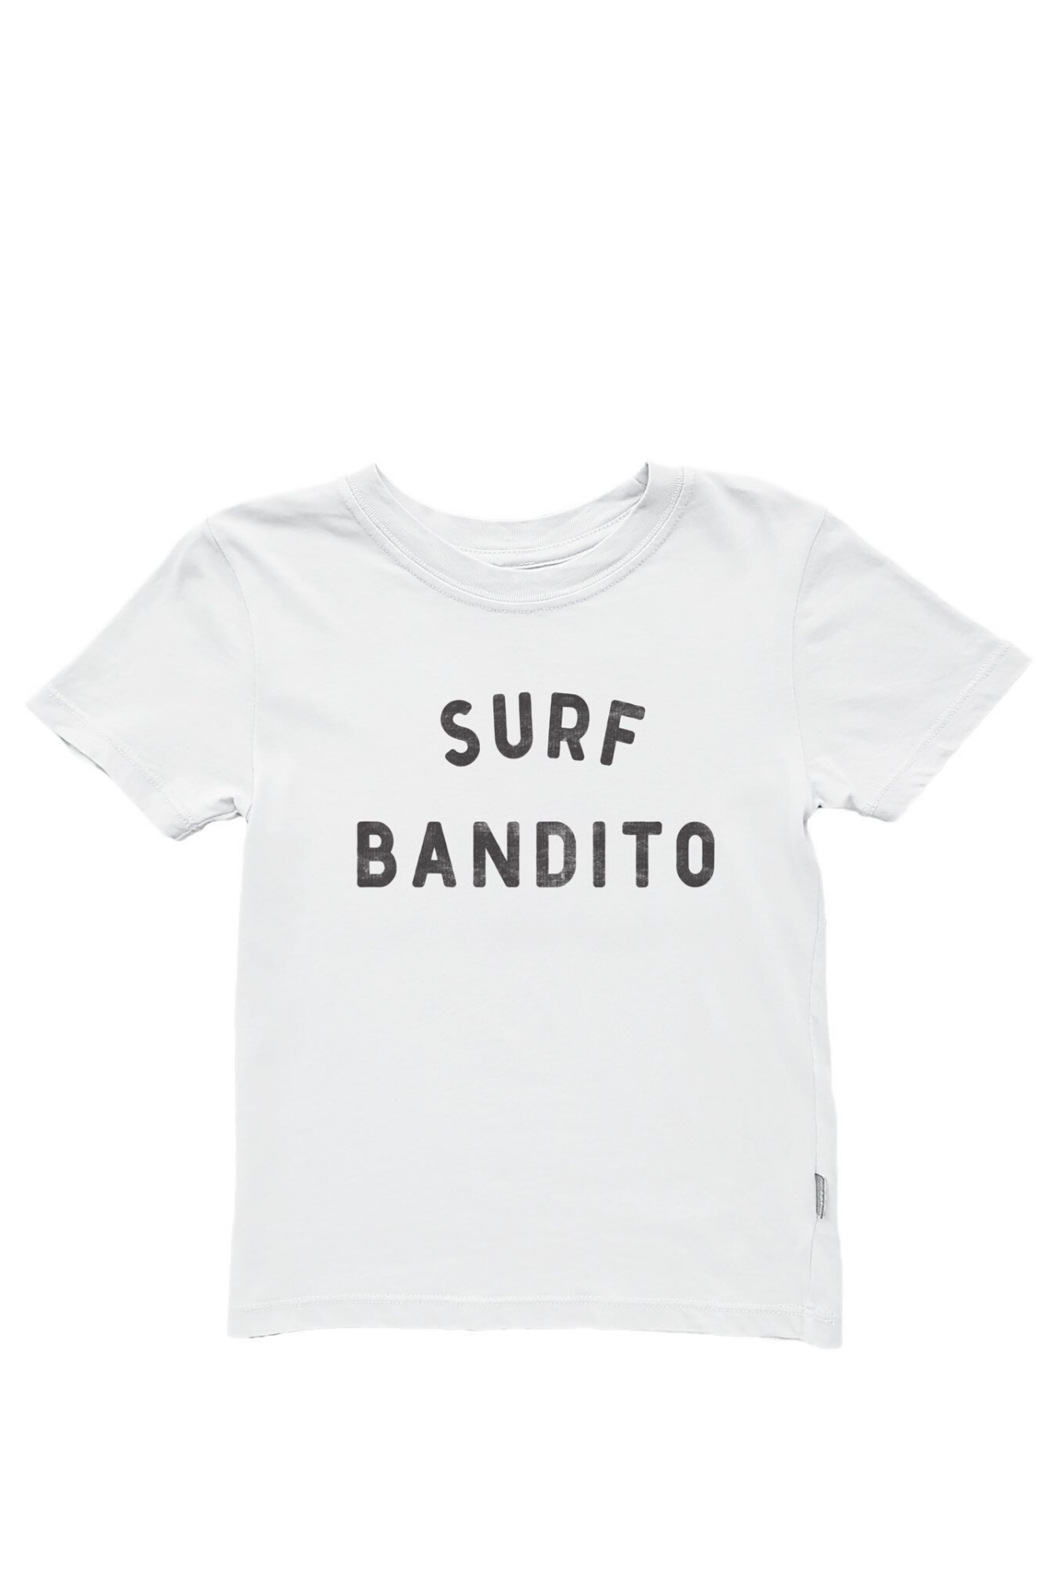 Feather 4 Arrow Surf Bandito Vintage tee - Front Cropped Image